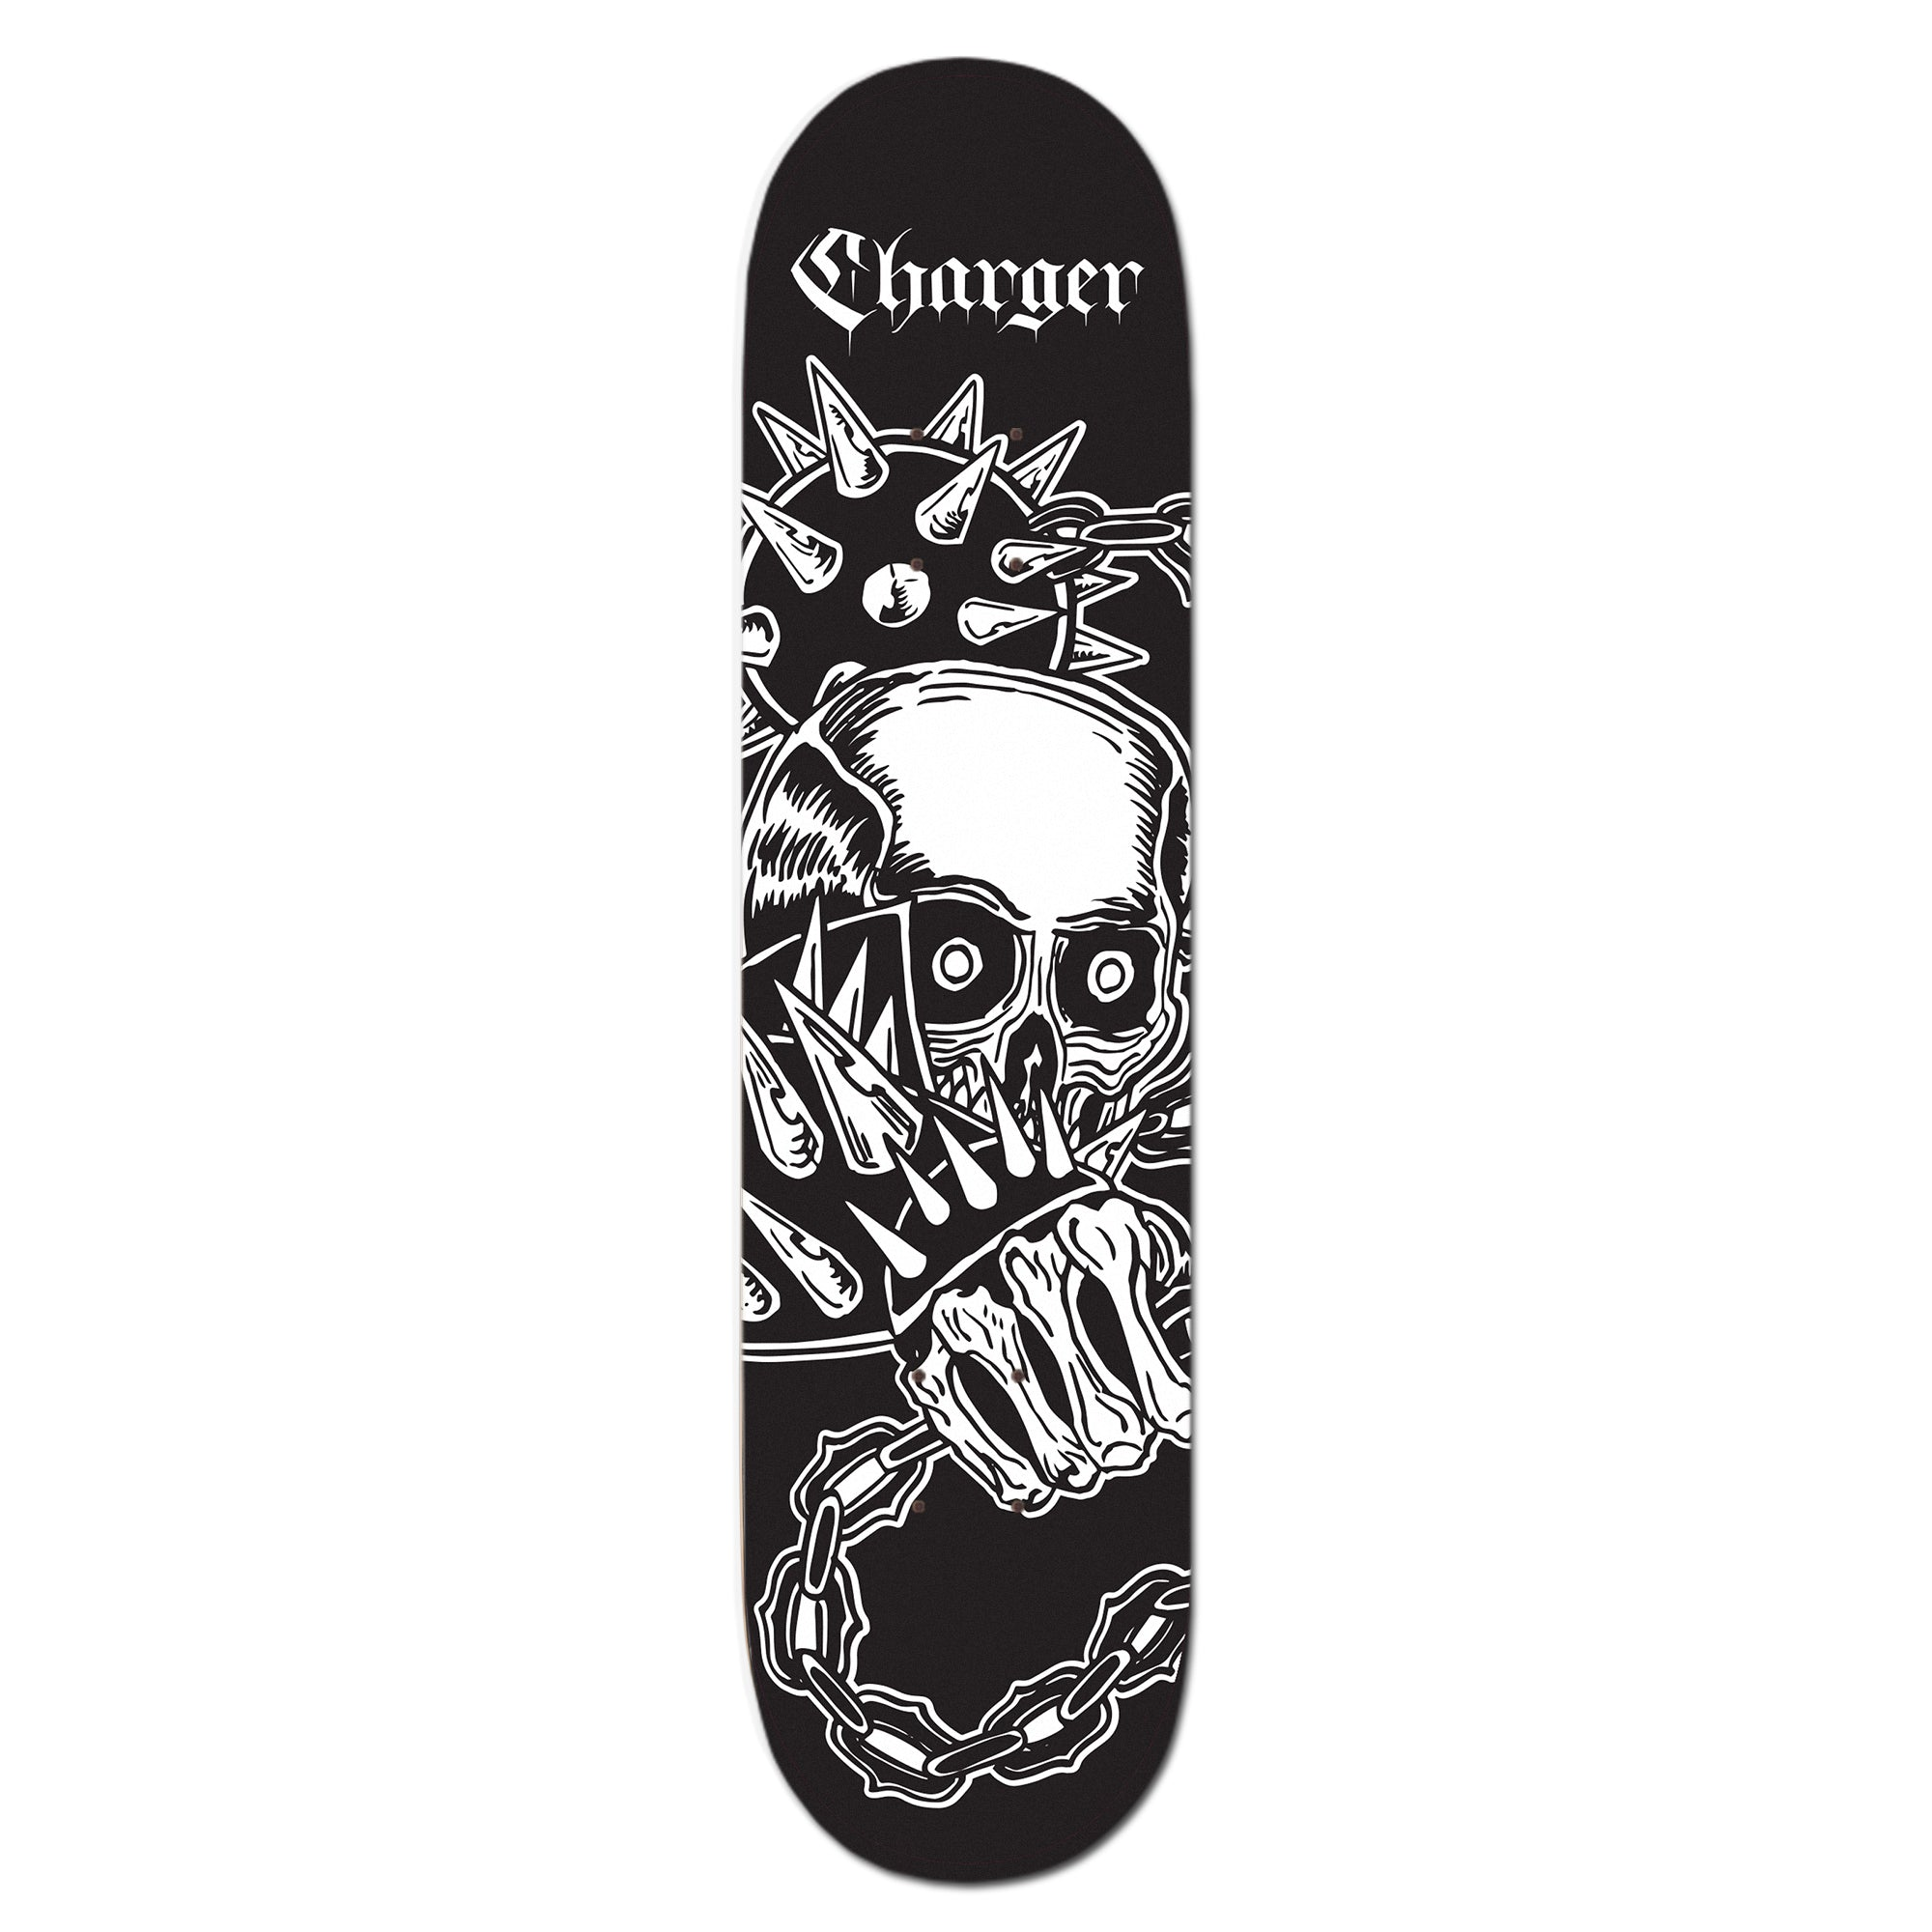 Charger - Chain - Skateboard Deck